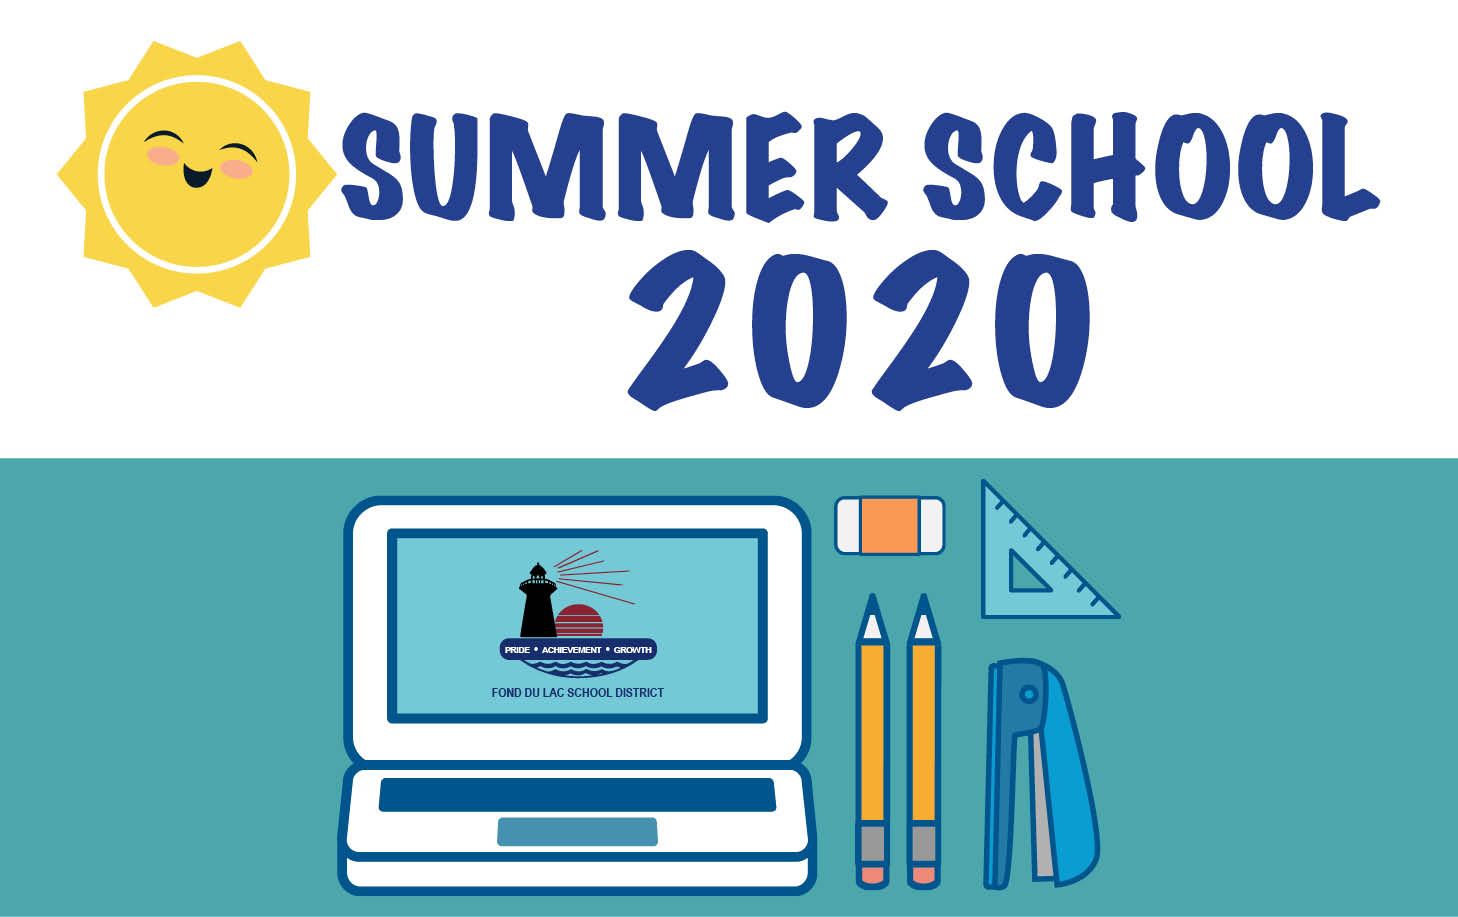 Summer School 2020 graphic